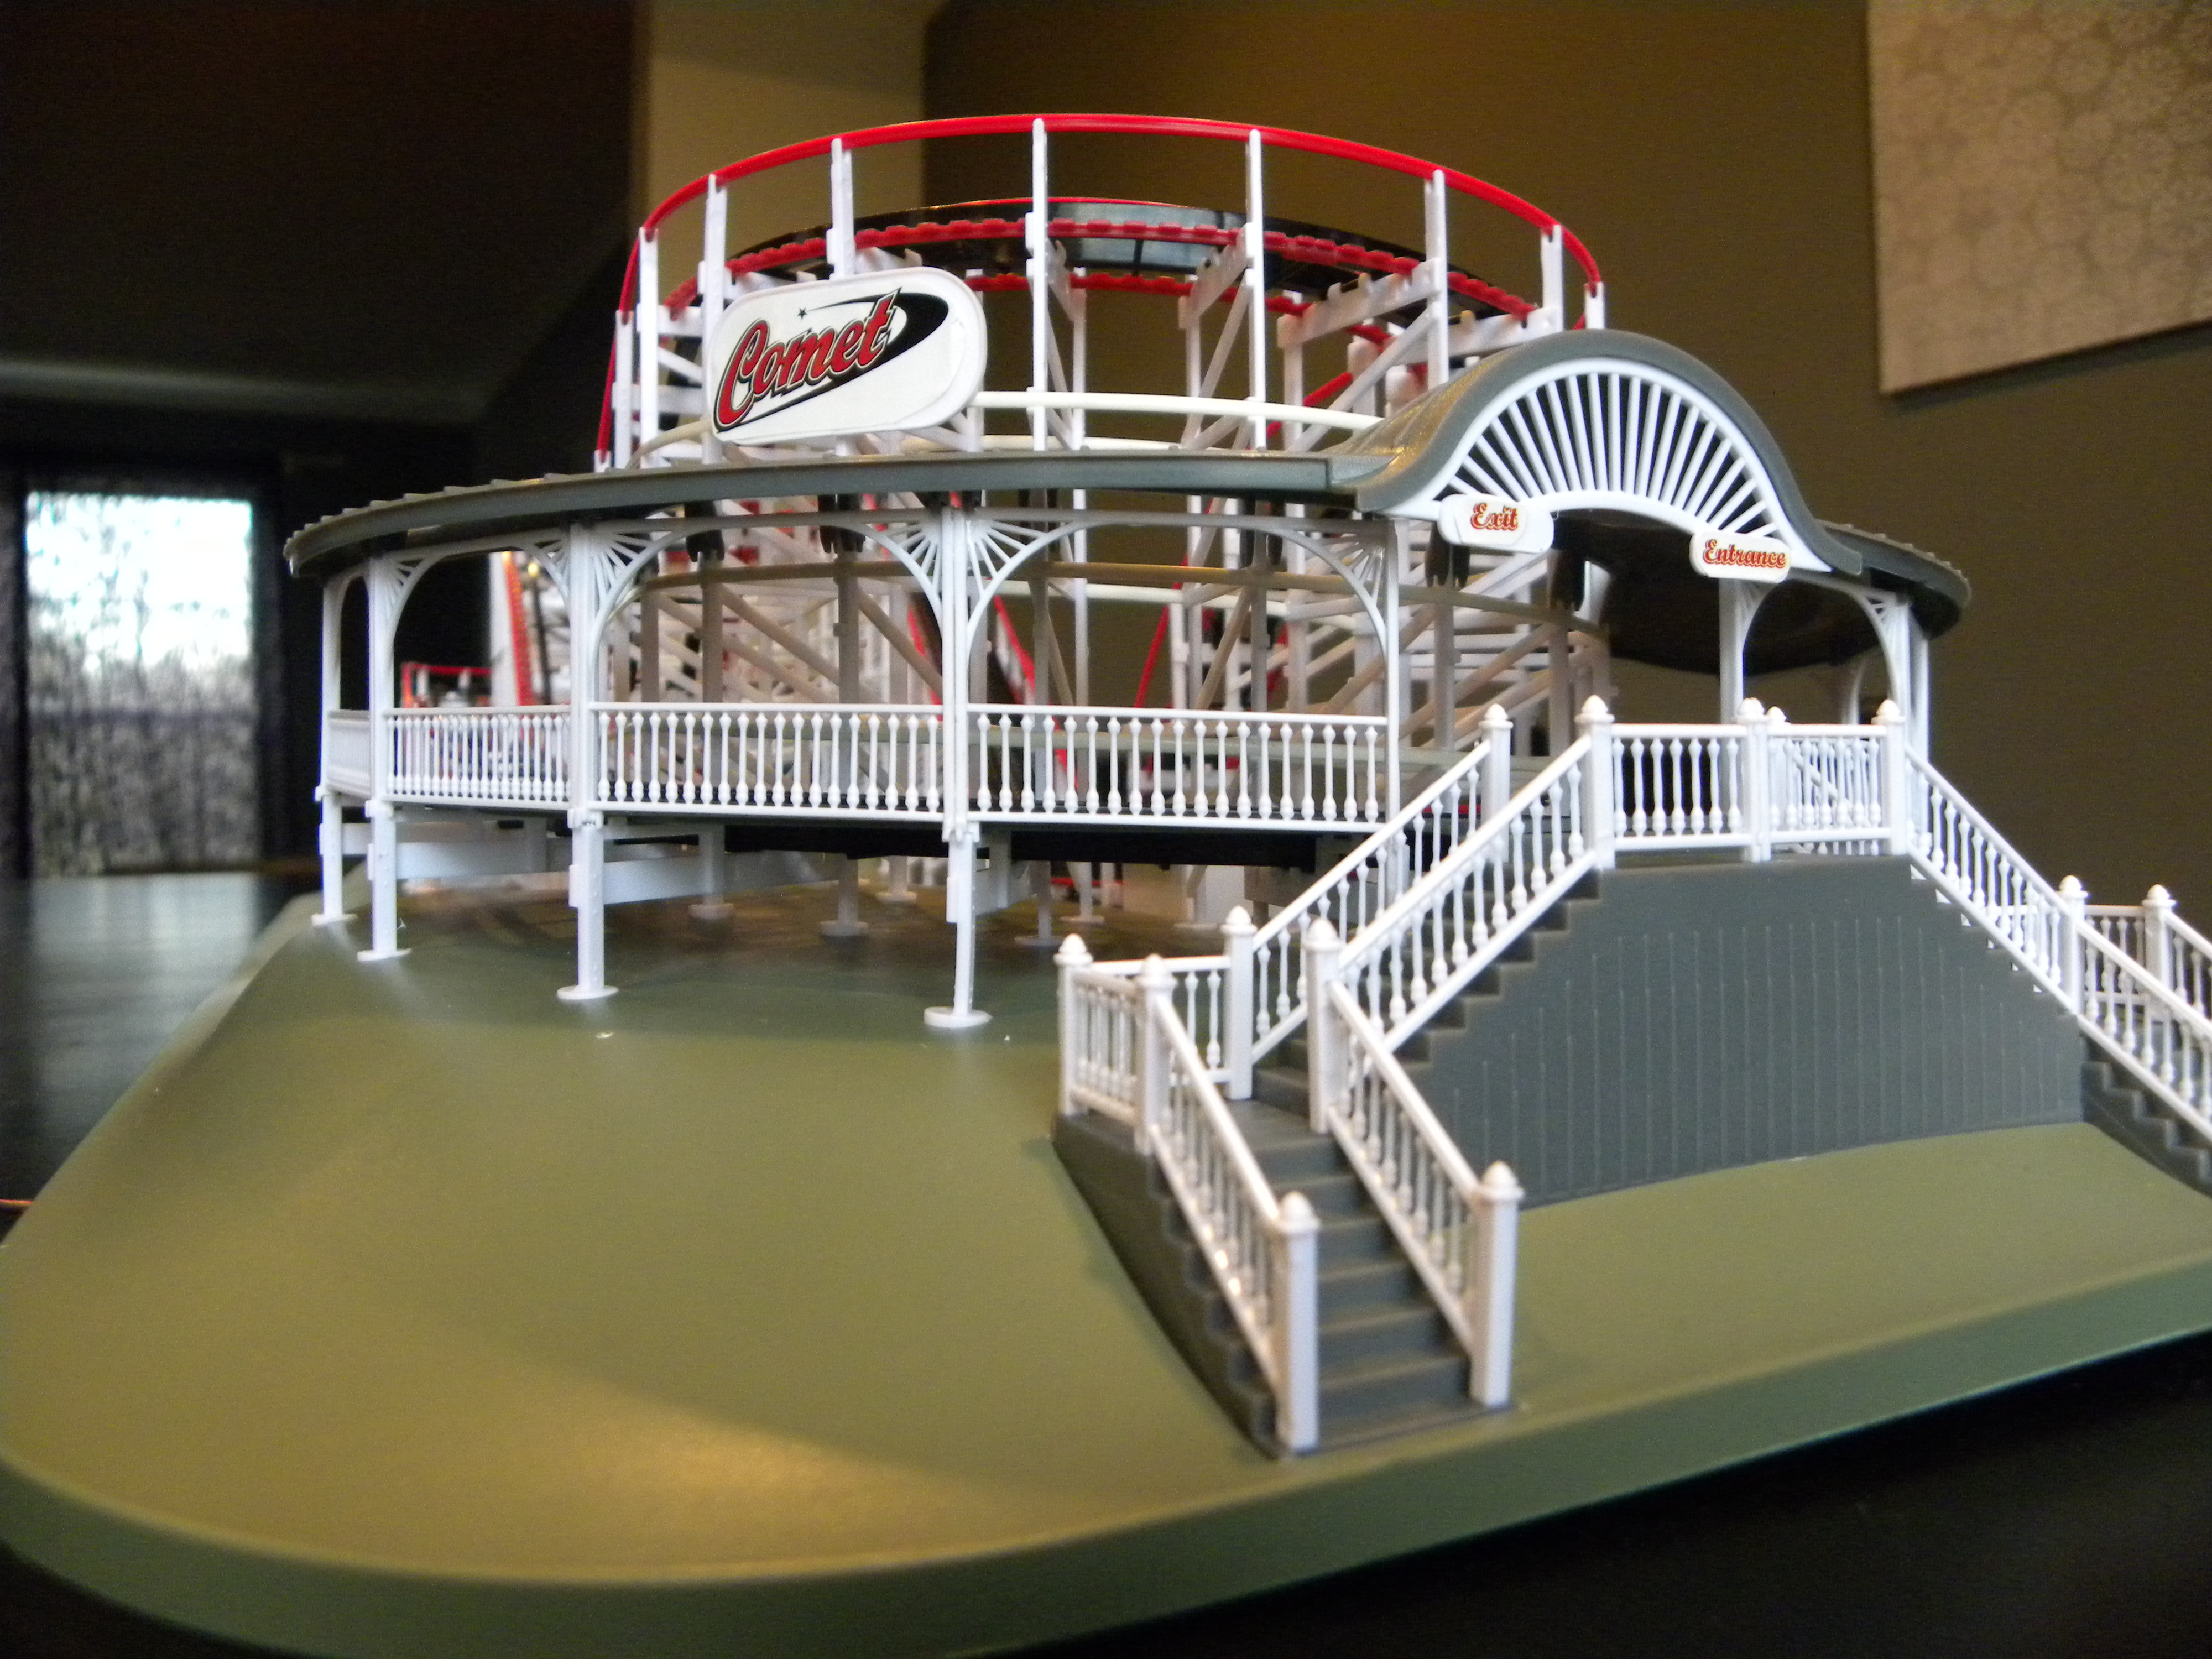 coasterdynamix comet wooden coaster model